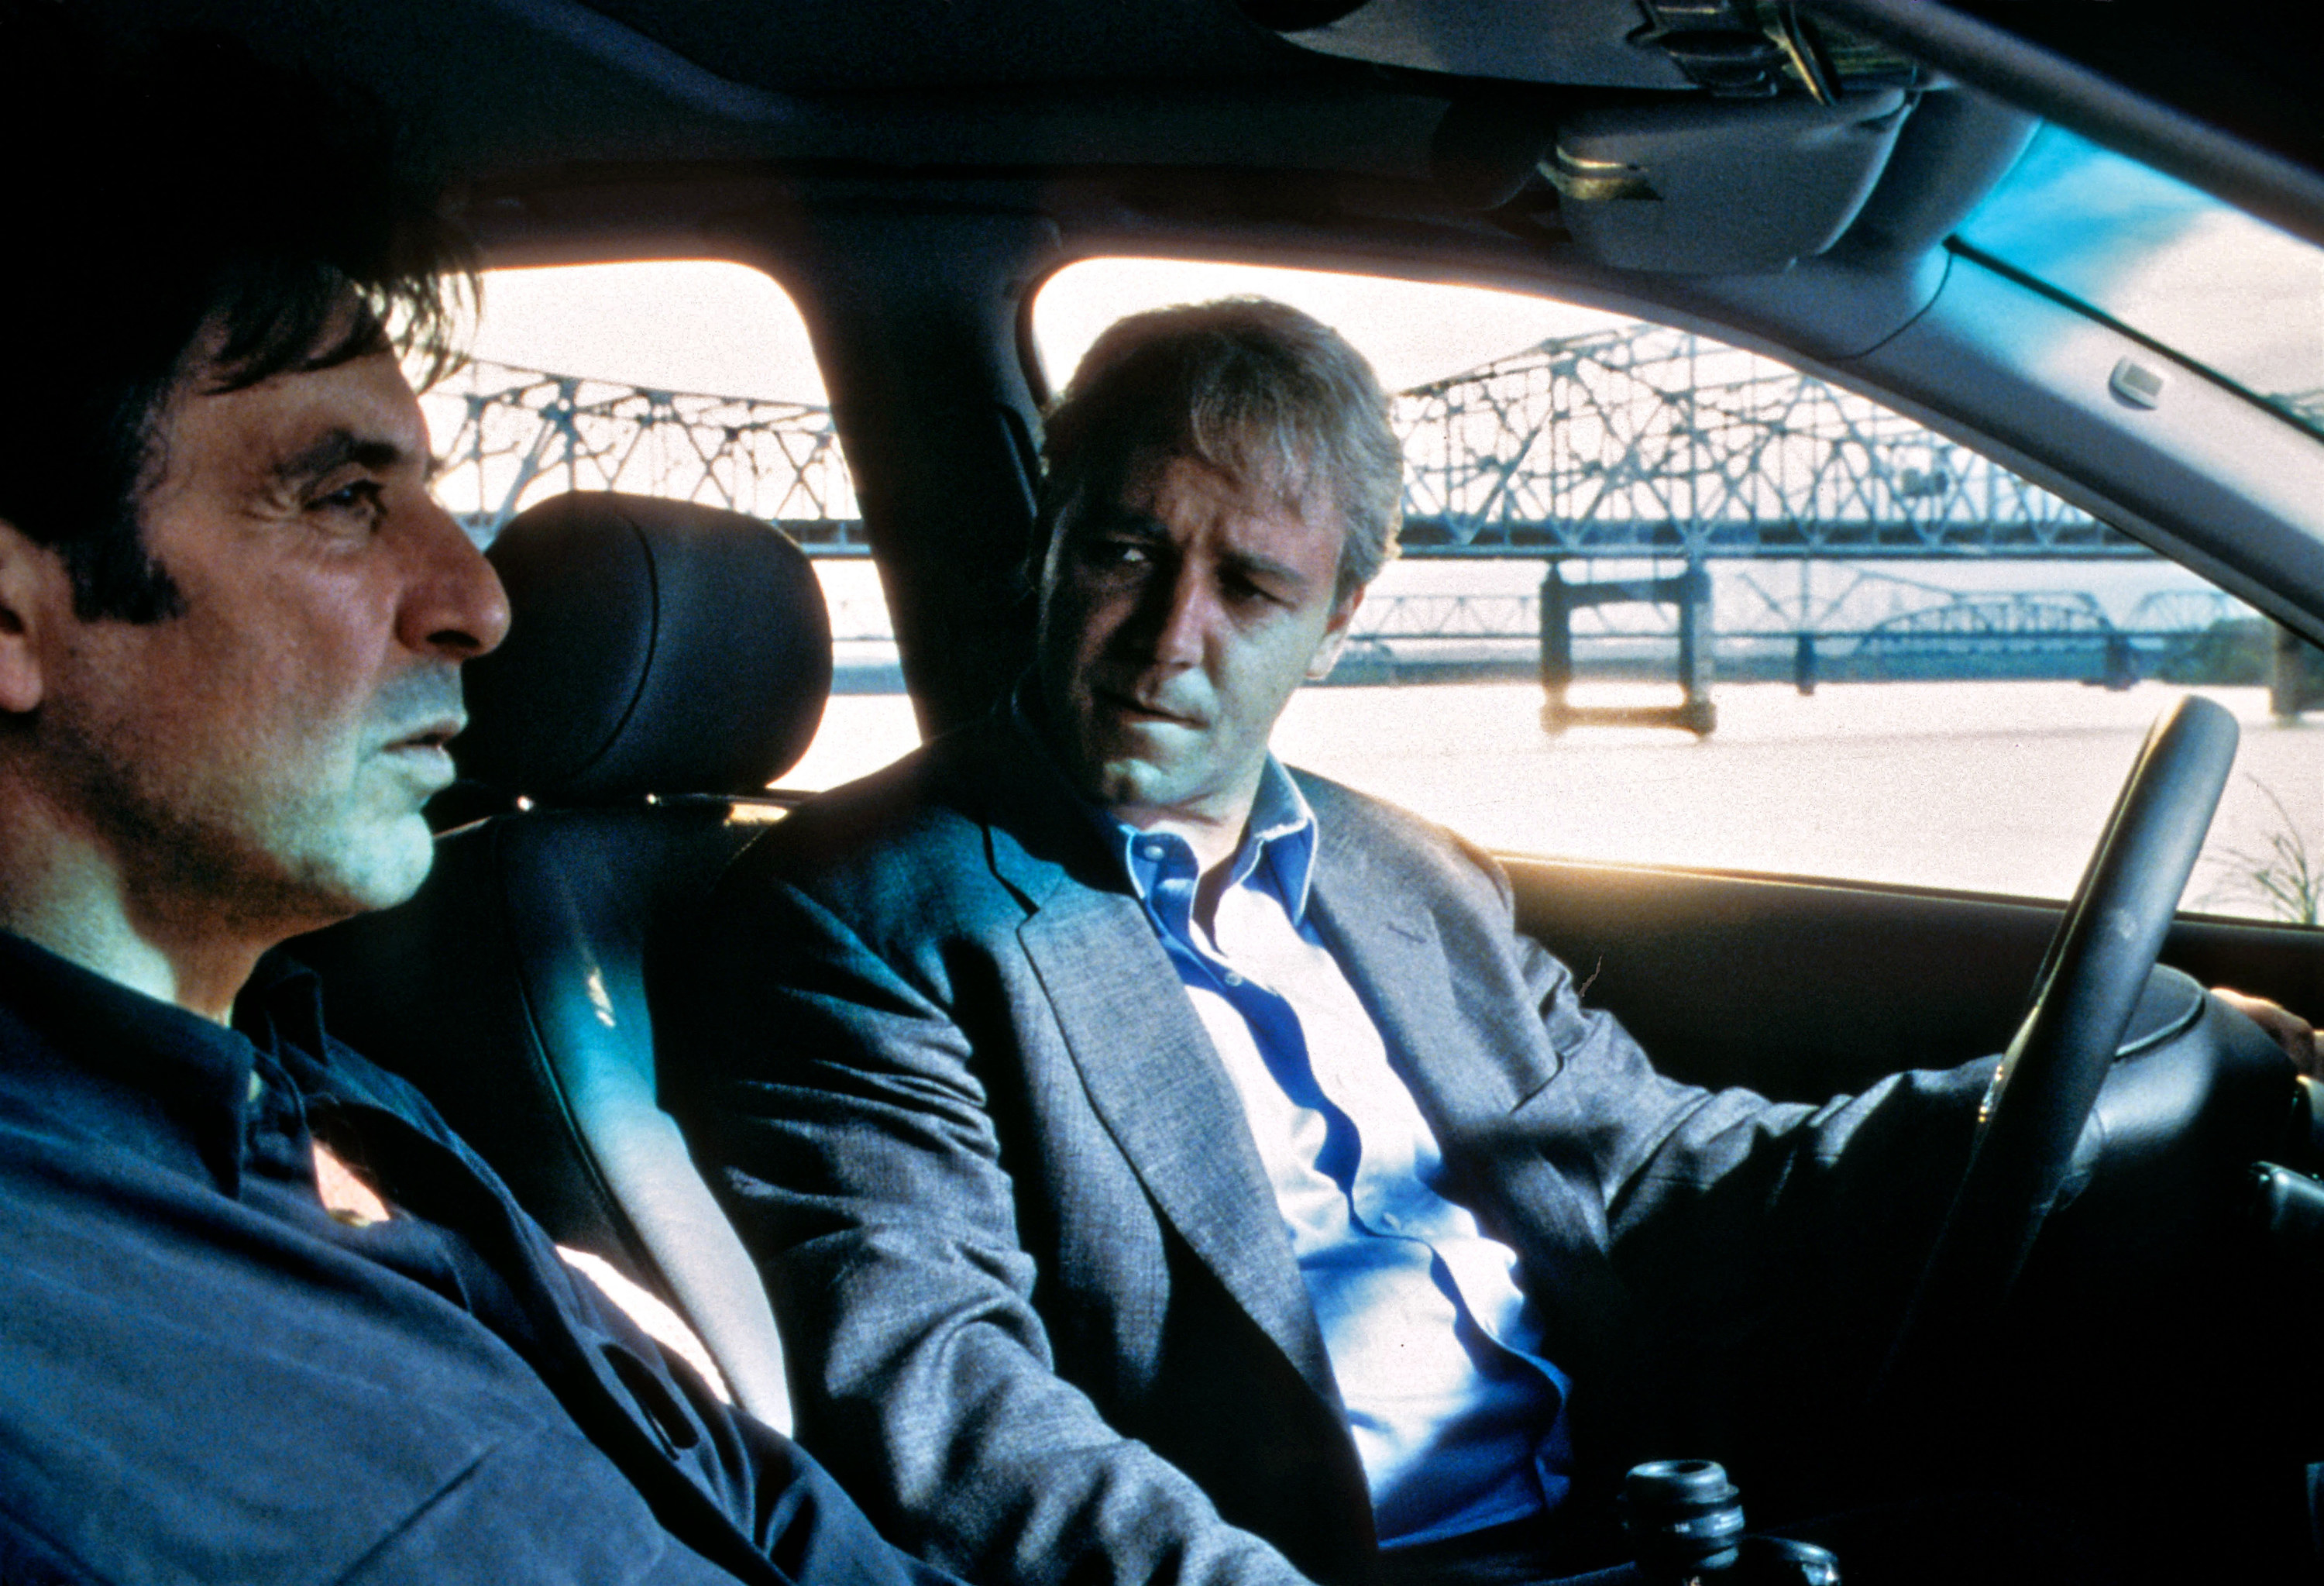 Al Pacino talks to Russell Crowe in a car